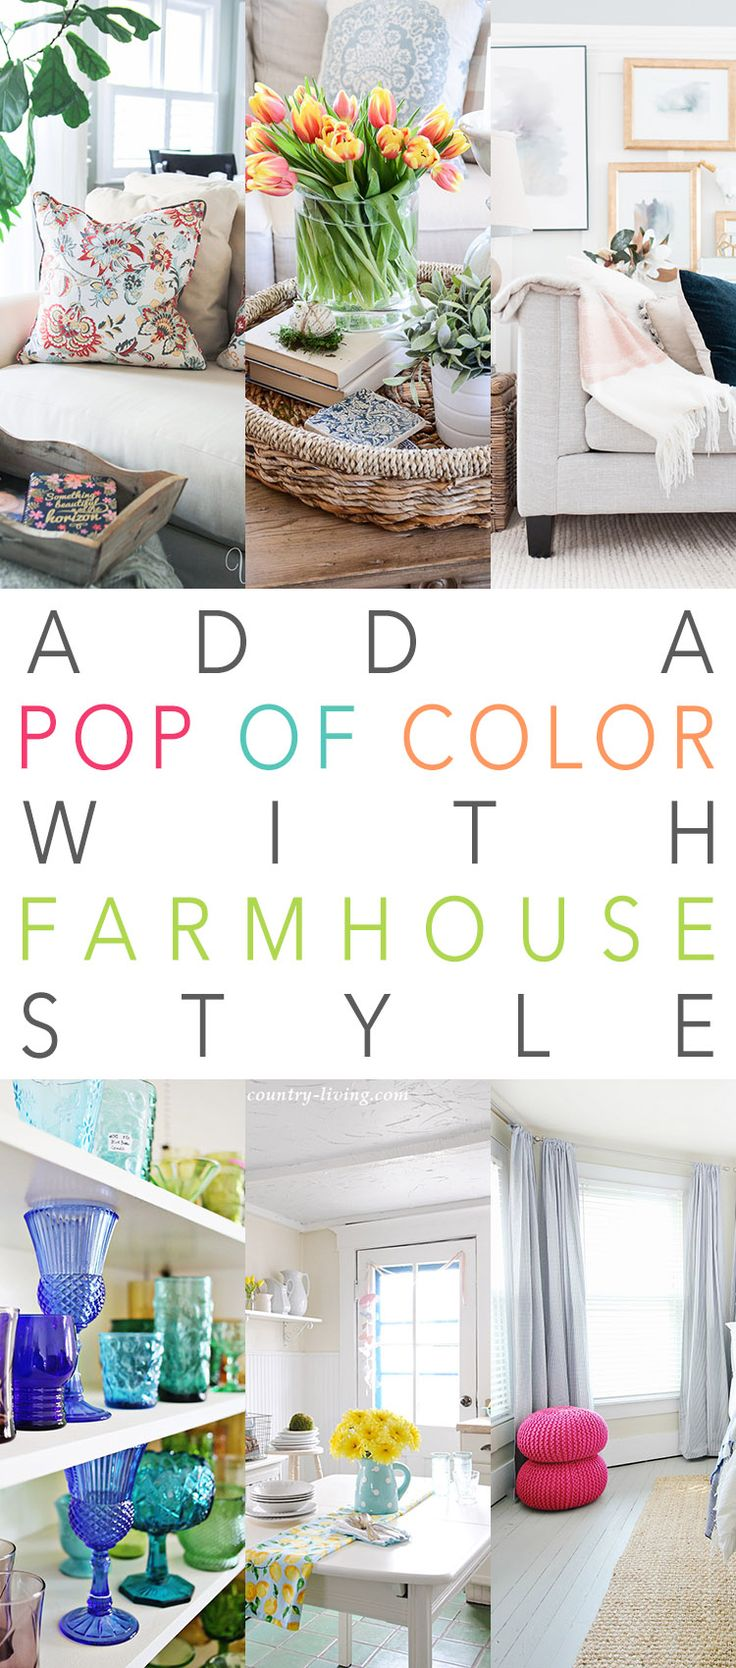 Add a Pop Of Color With Farmhouse Style